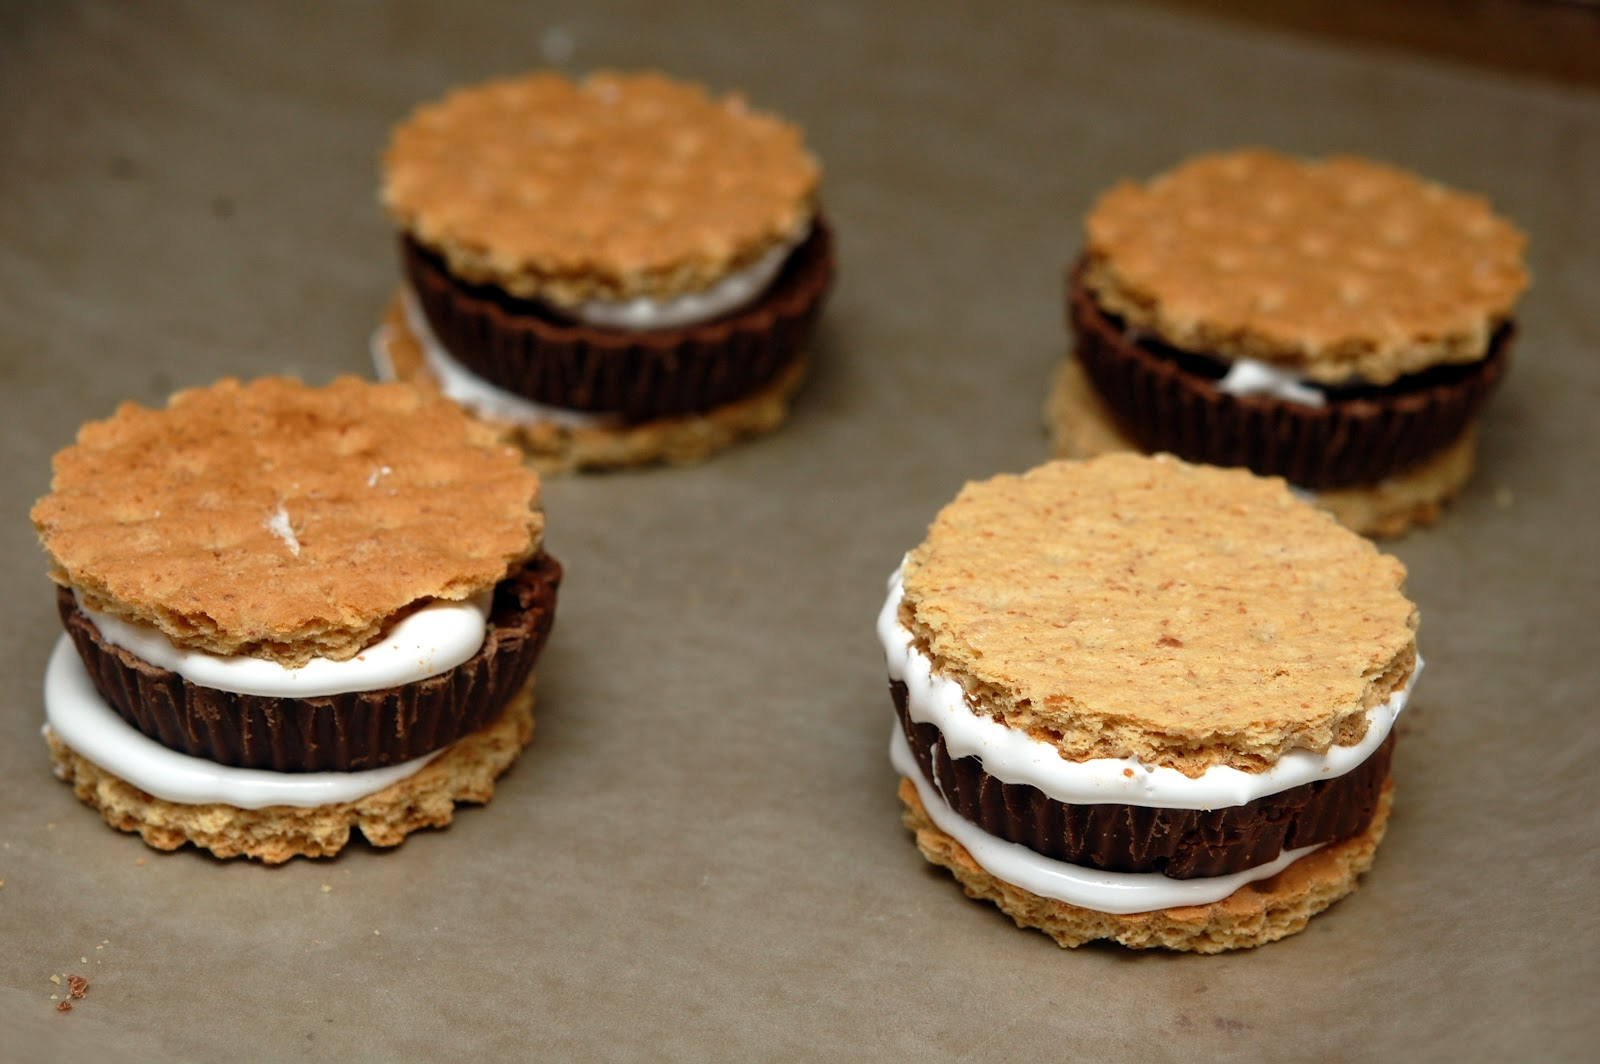 CHOCOLATE DIPPED PB CUP S'MORE - Hugs and Cookies XOXO